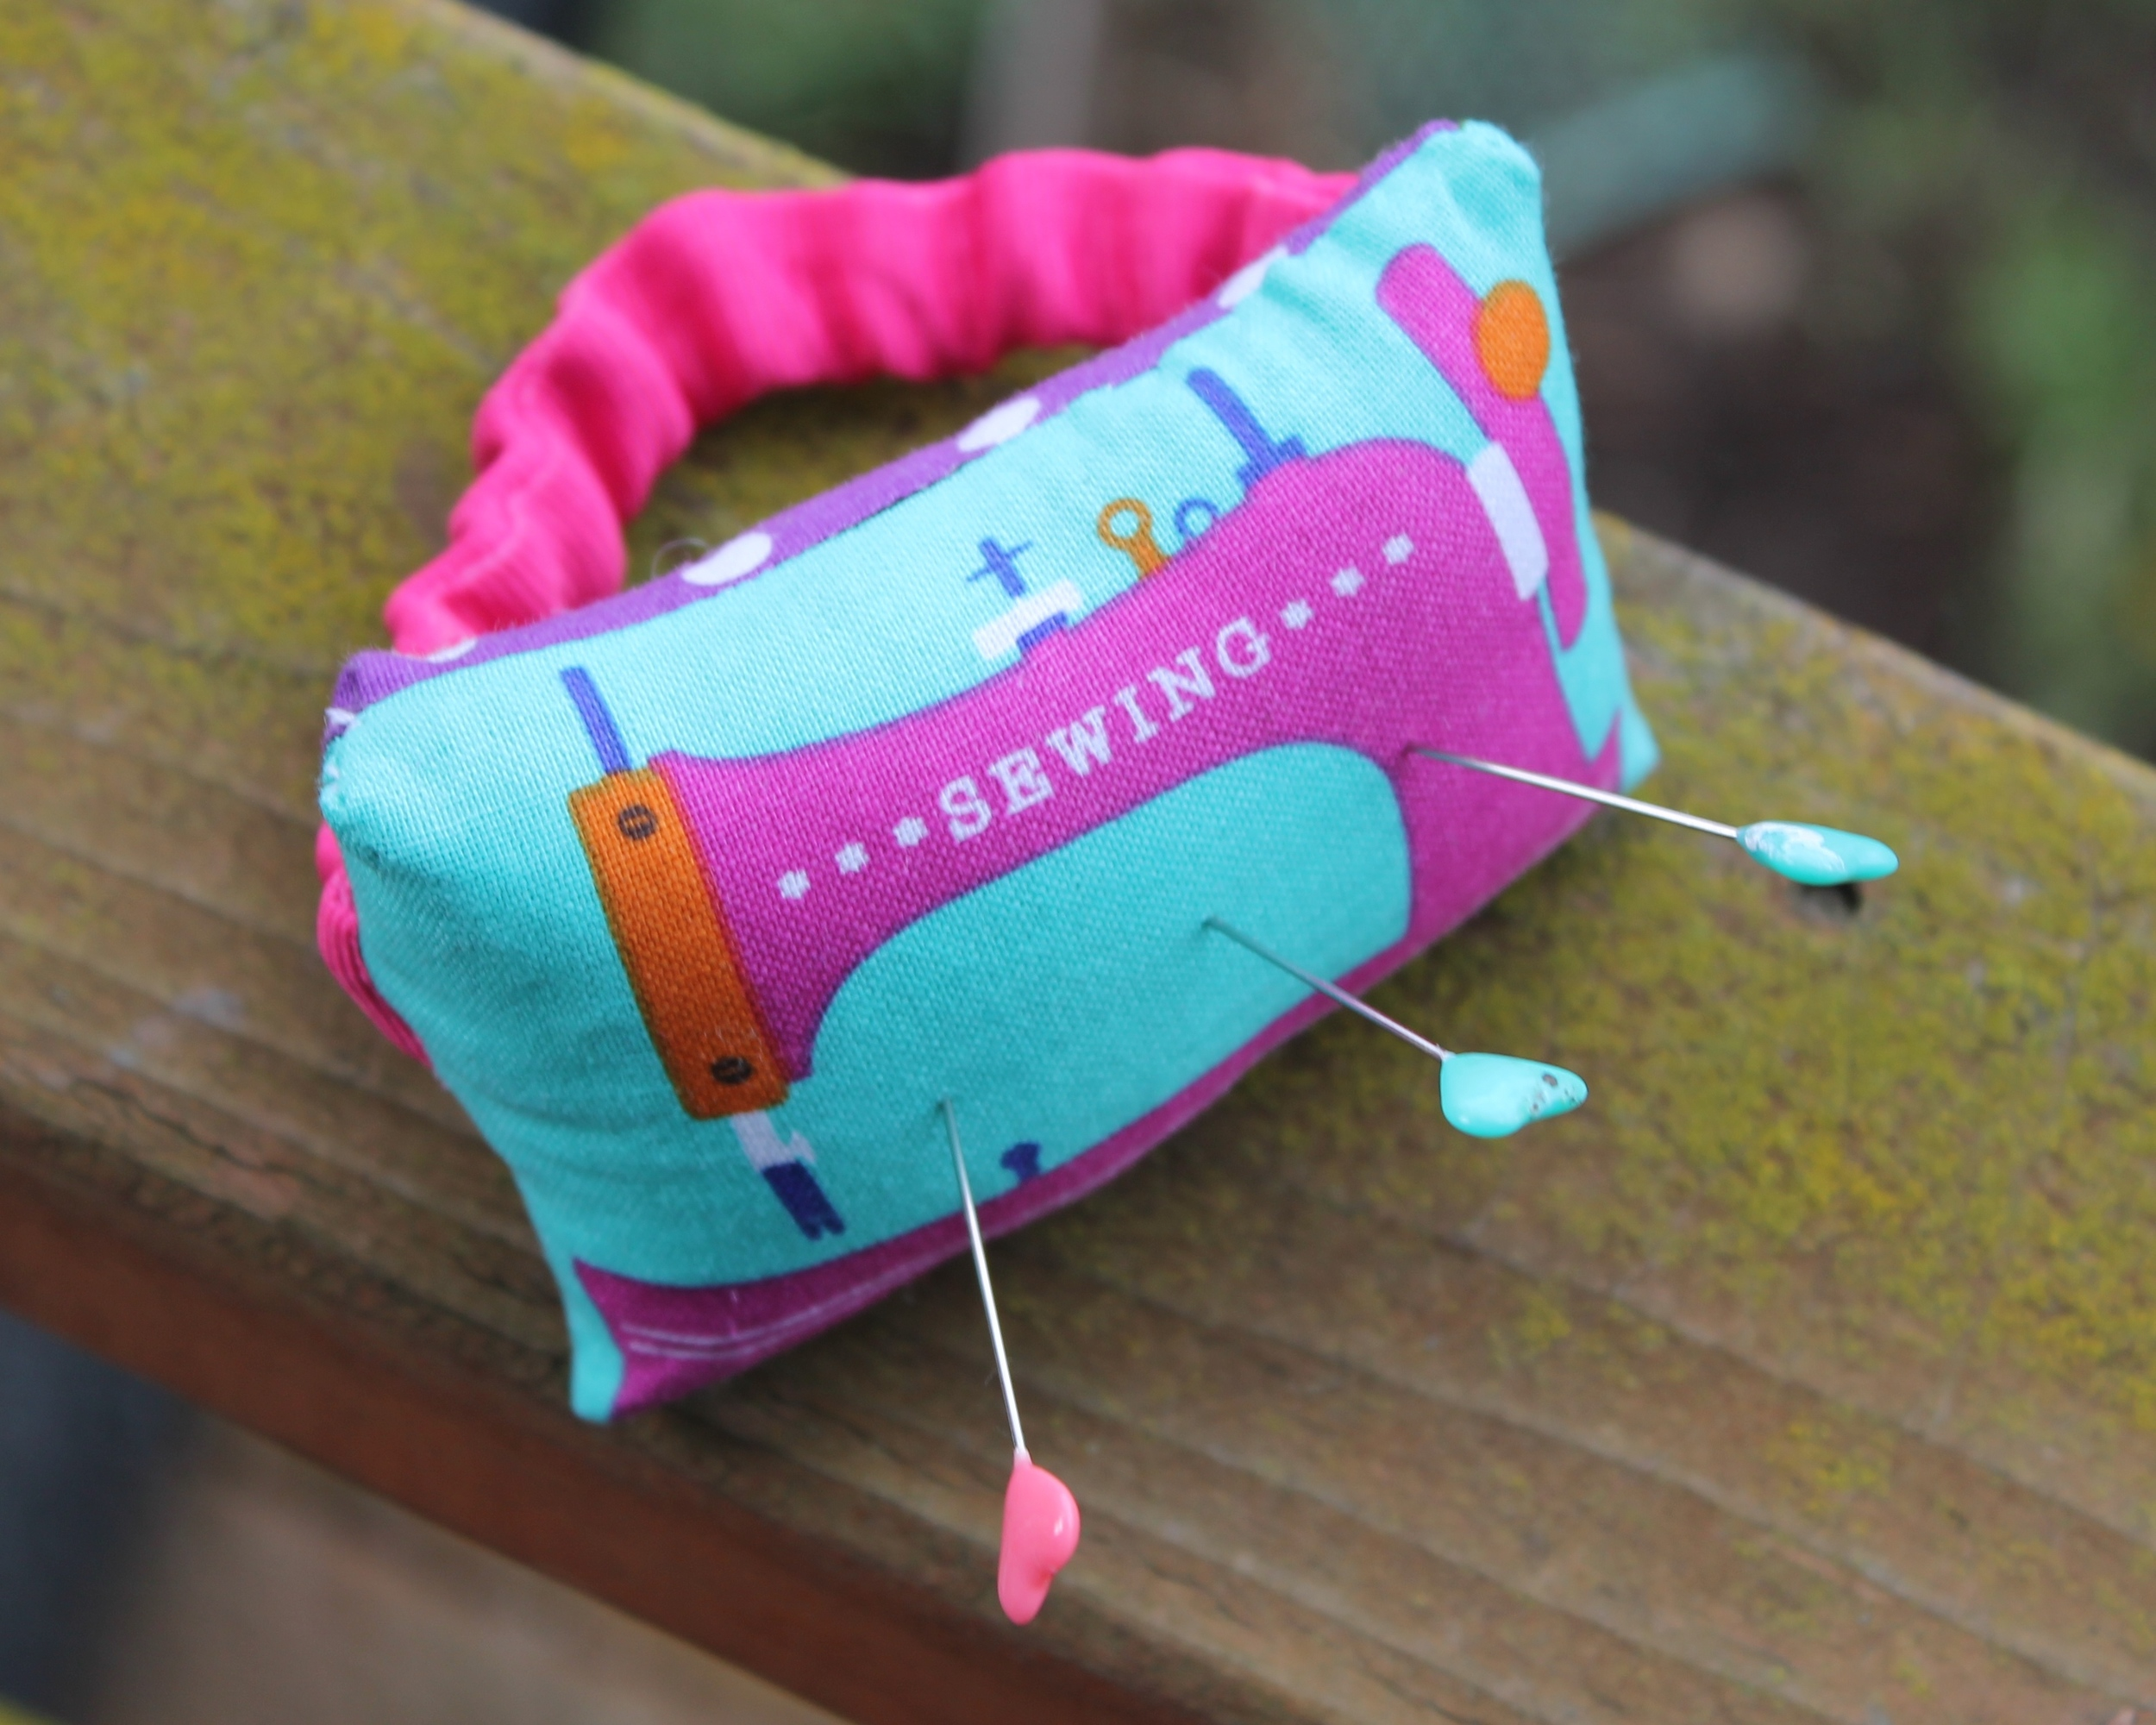 Wrist pincushion with pink sewing machine on it